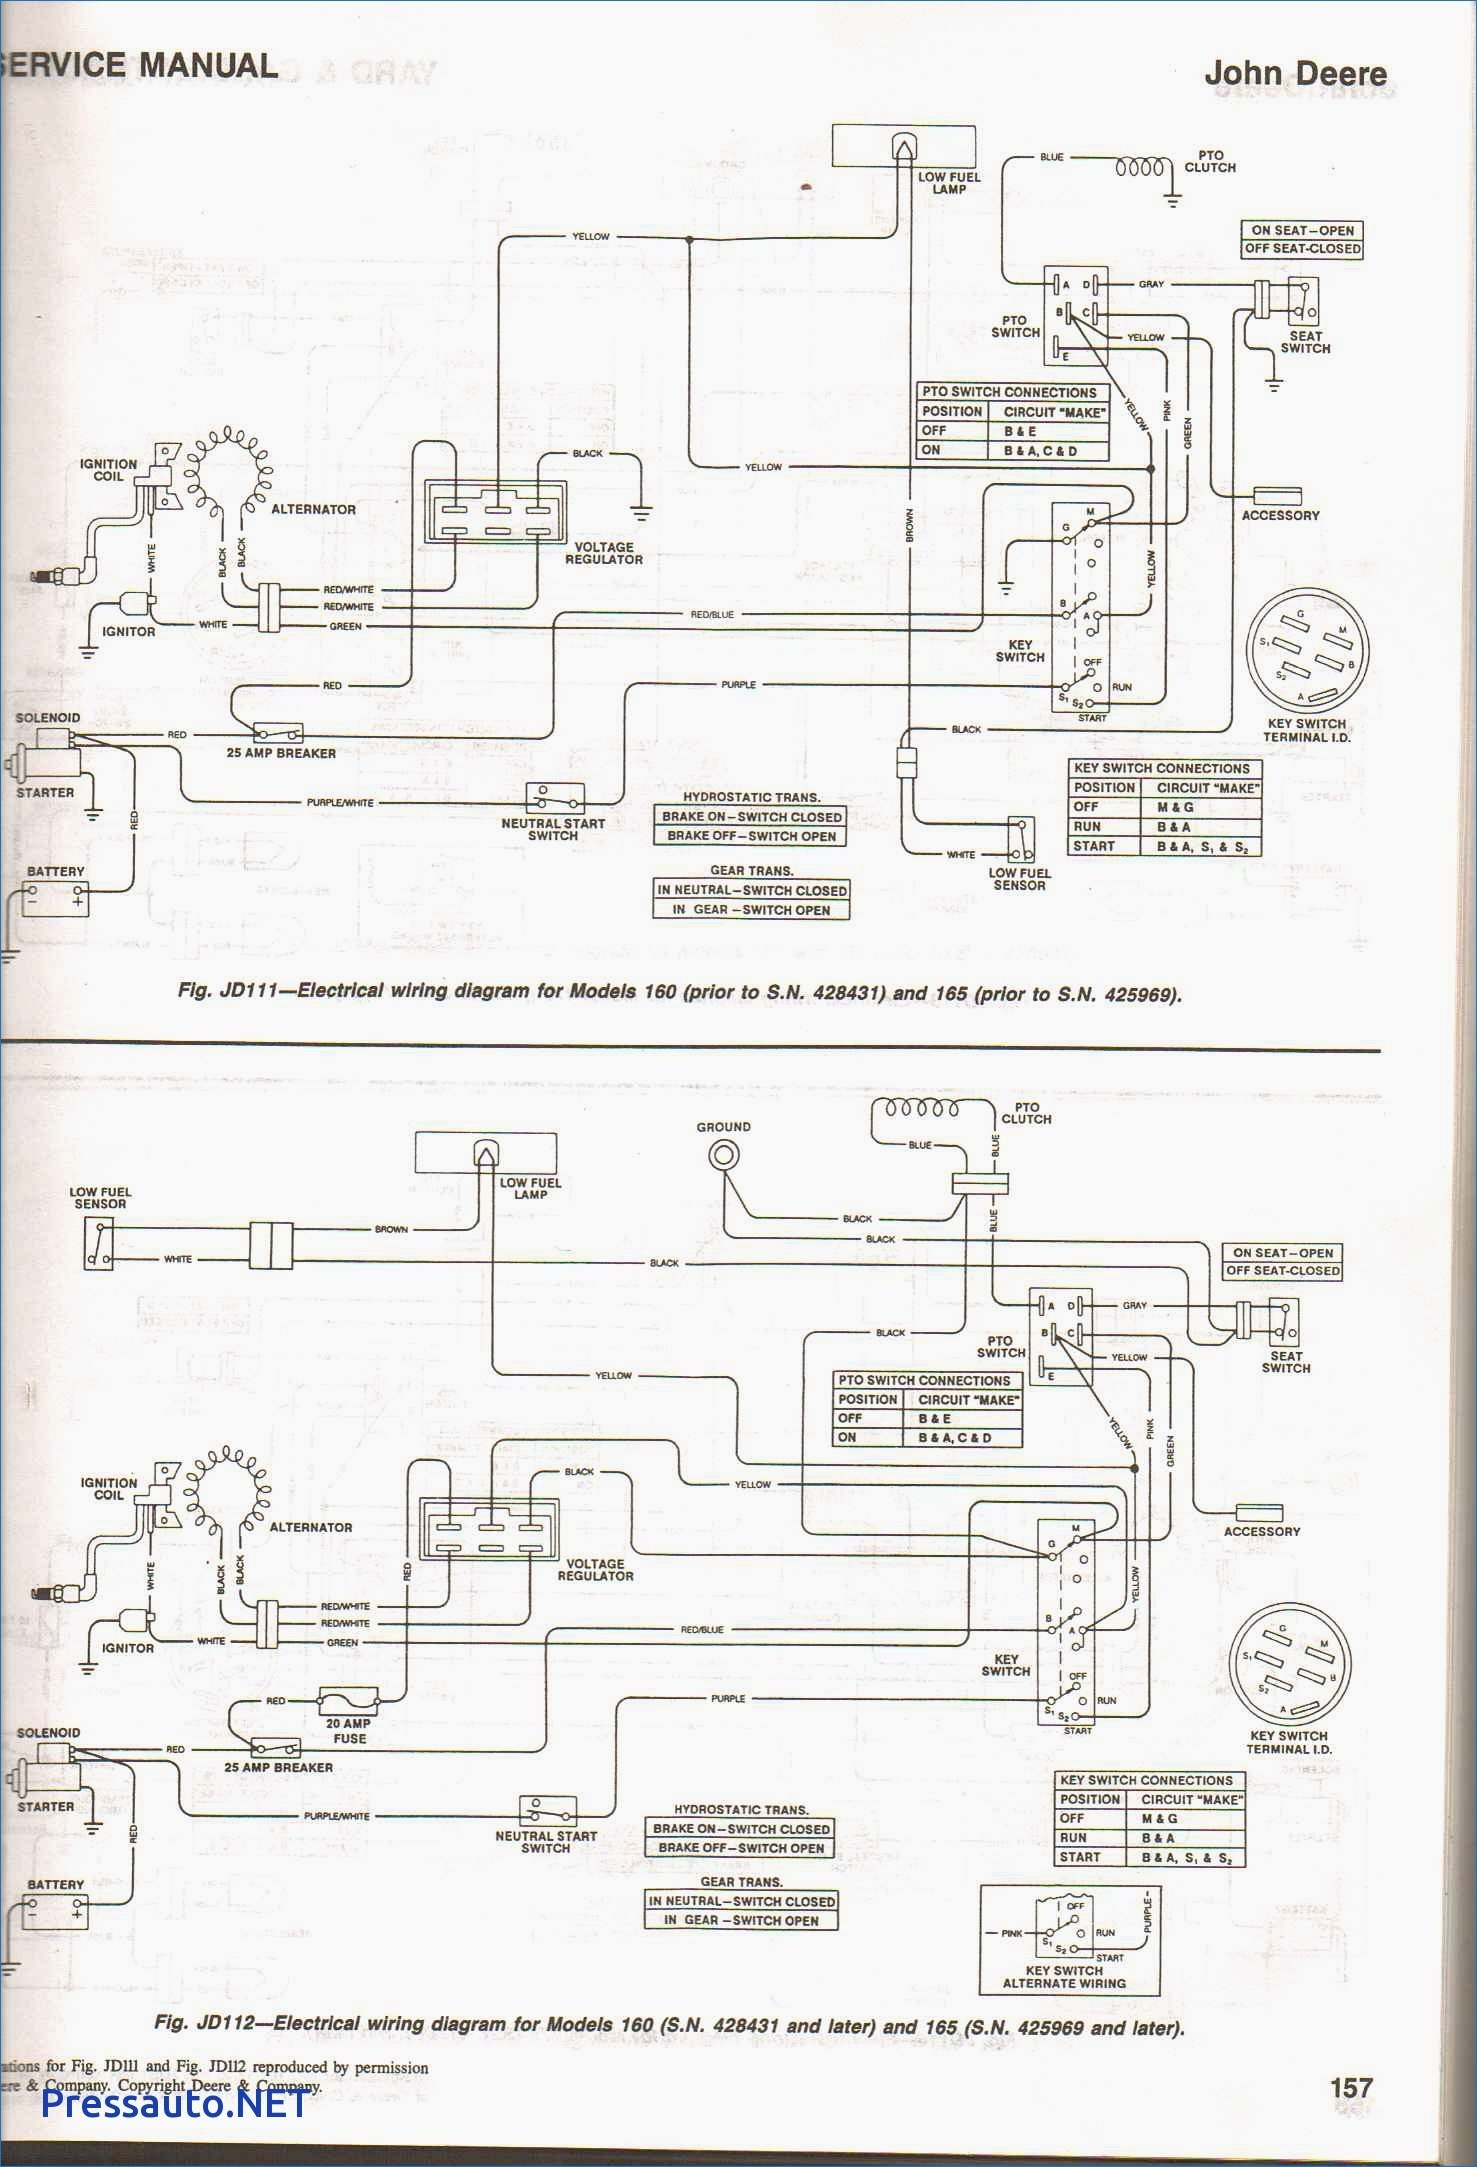 John Deere 68 Riding Mower Wiring Diagram Solutions Model Lawnmowermodelr72i Need The Assembly Gator Engine Parts